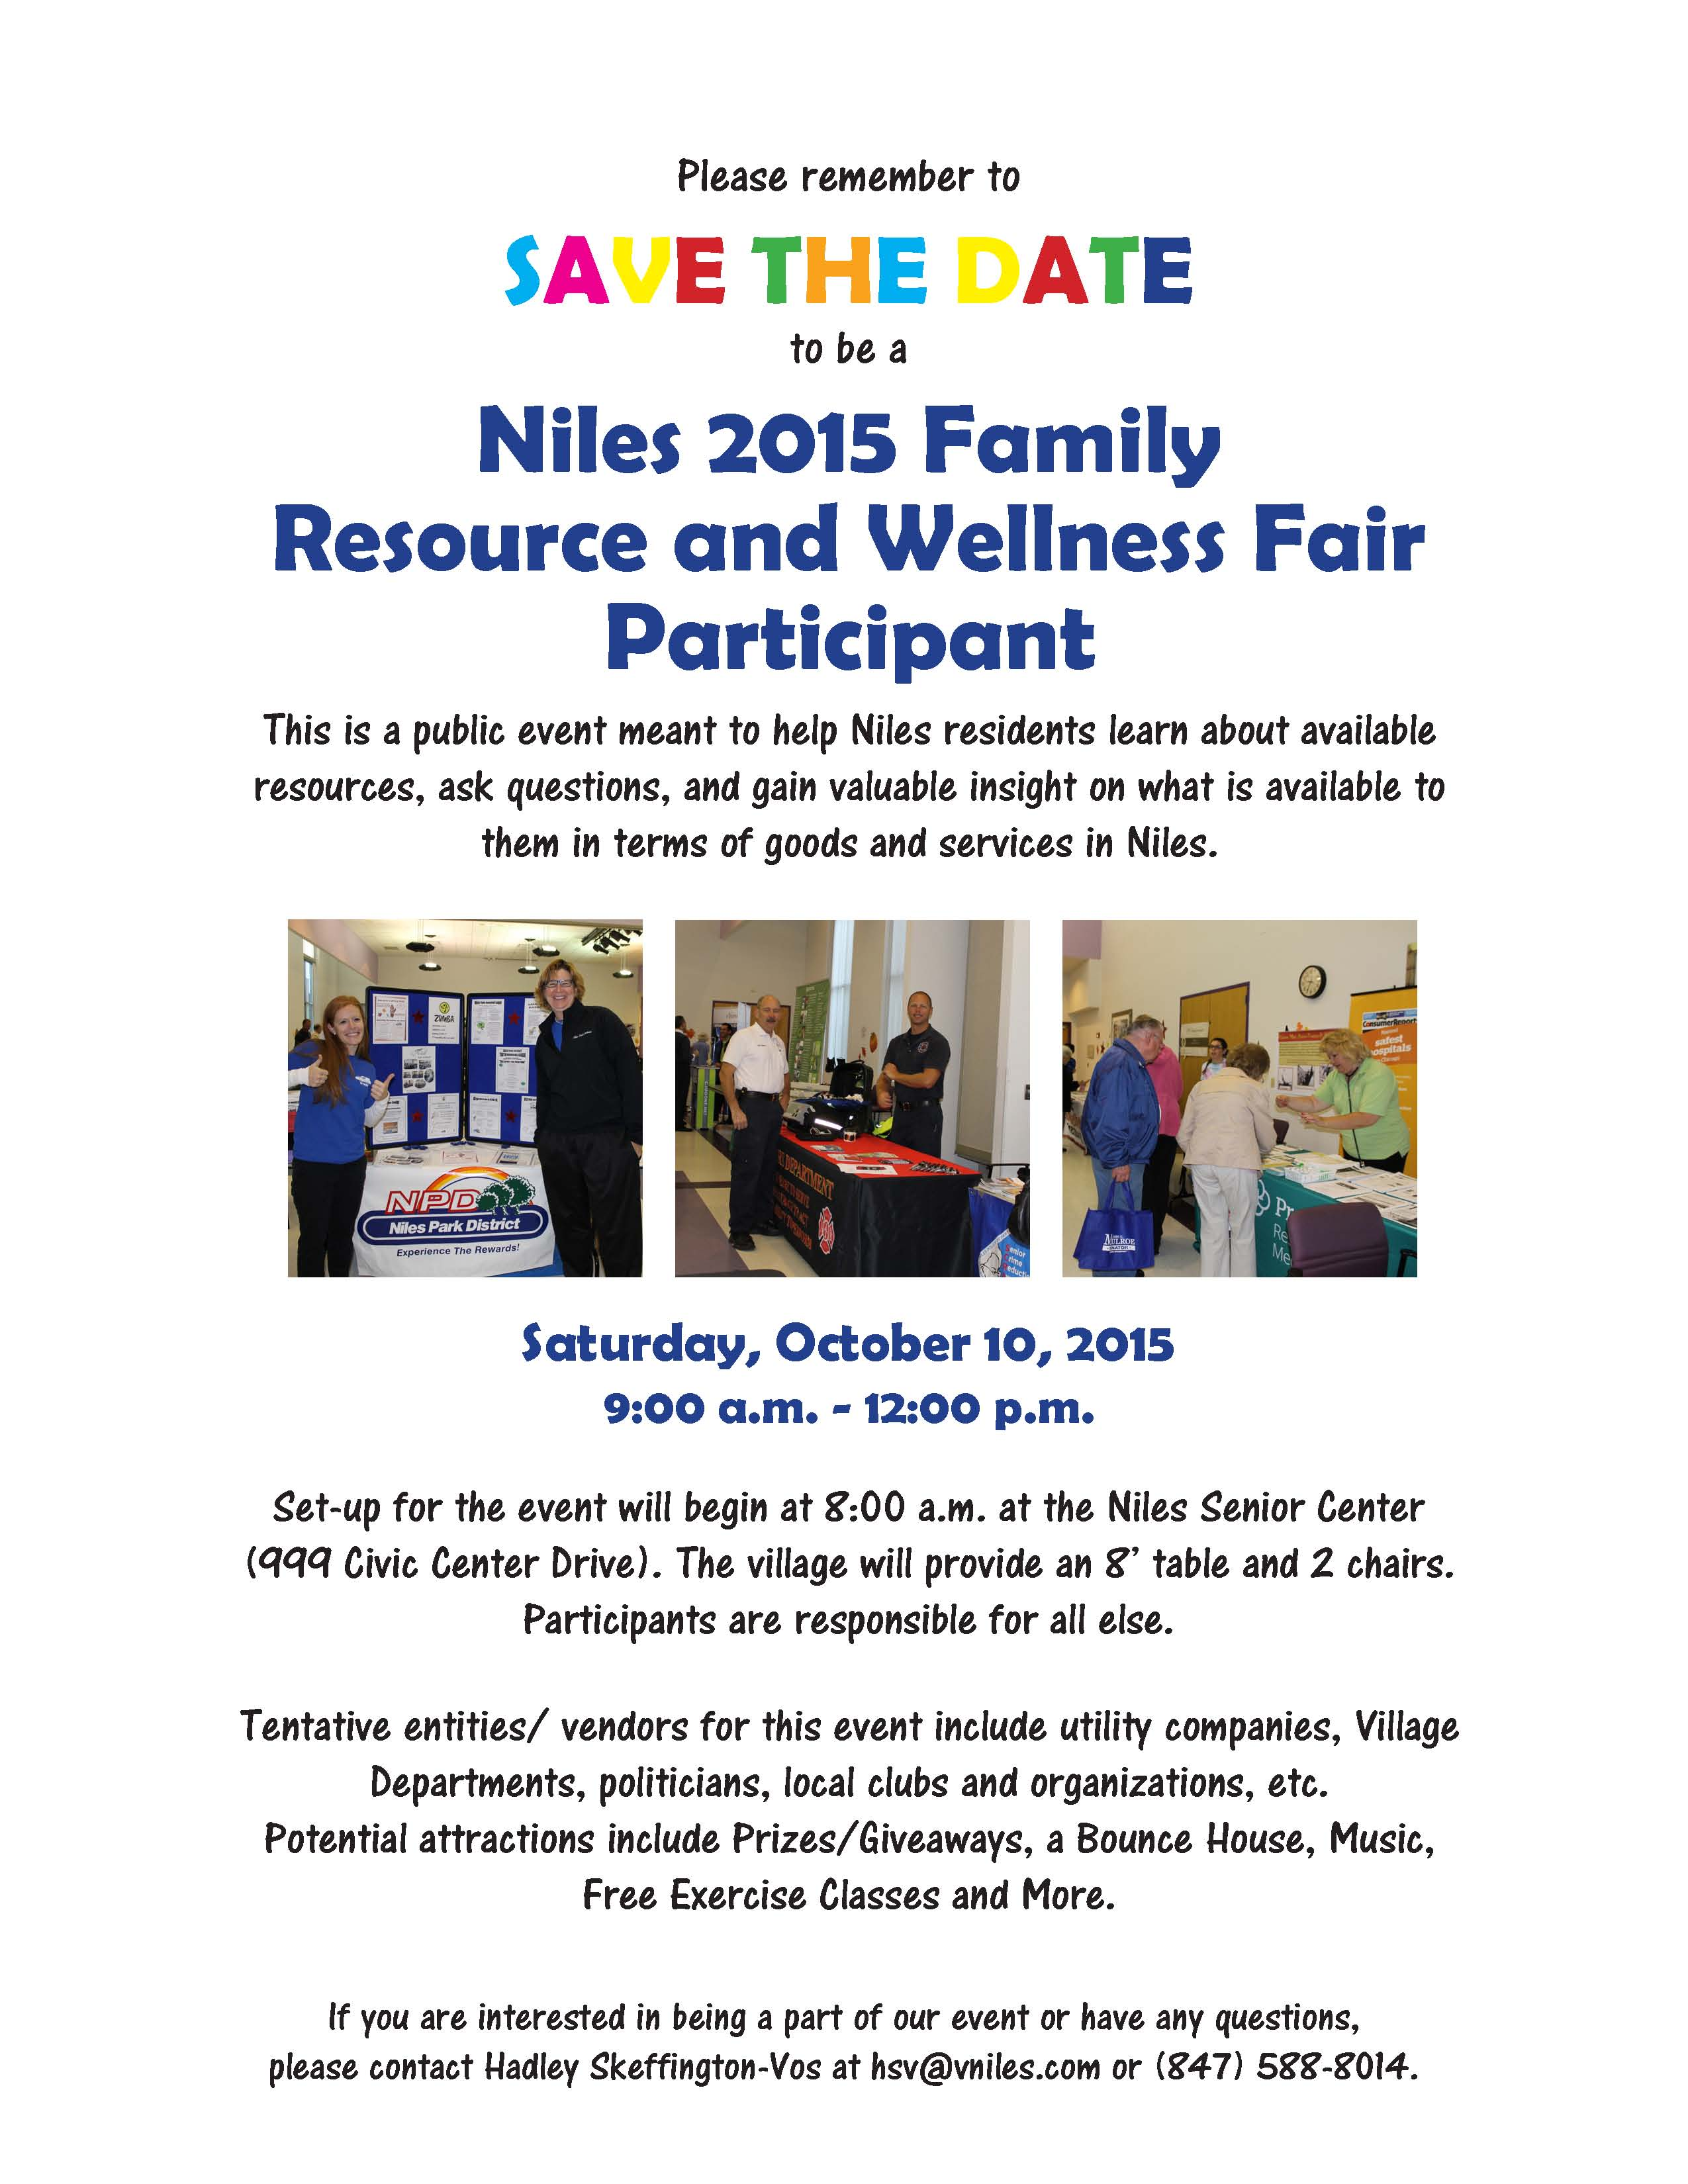 Family resource and wellness fair niles il official website